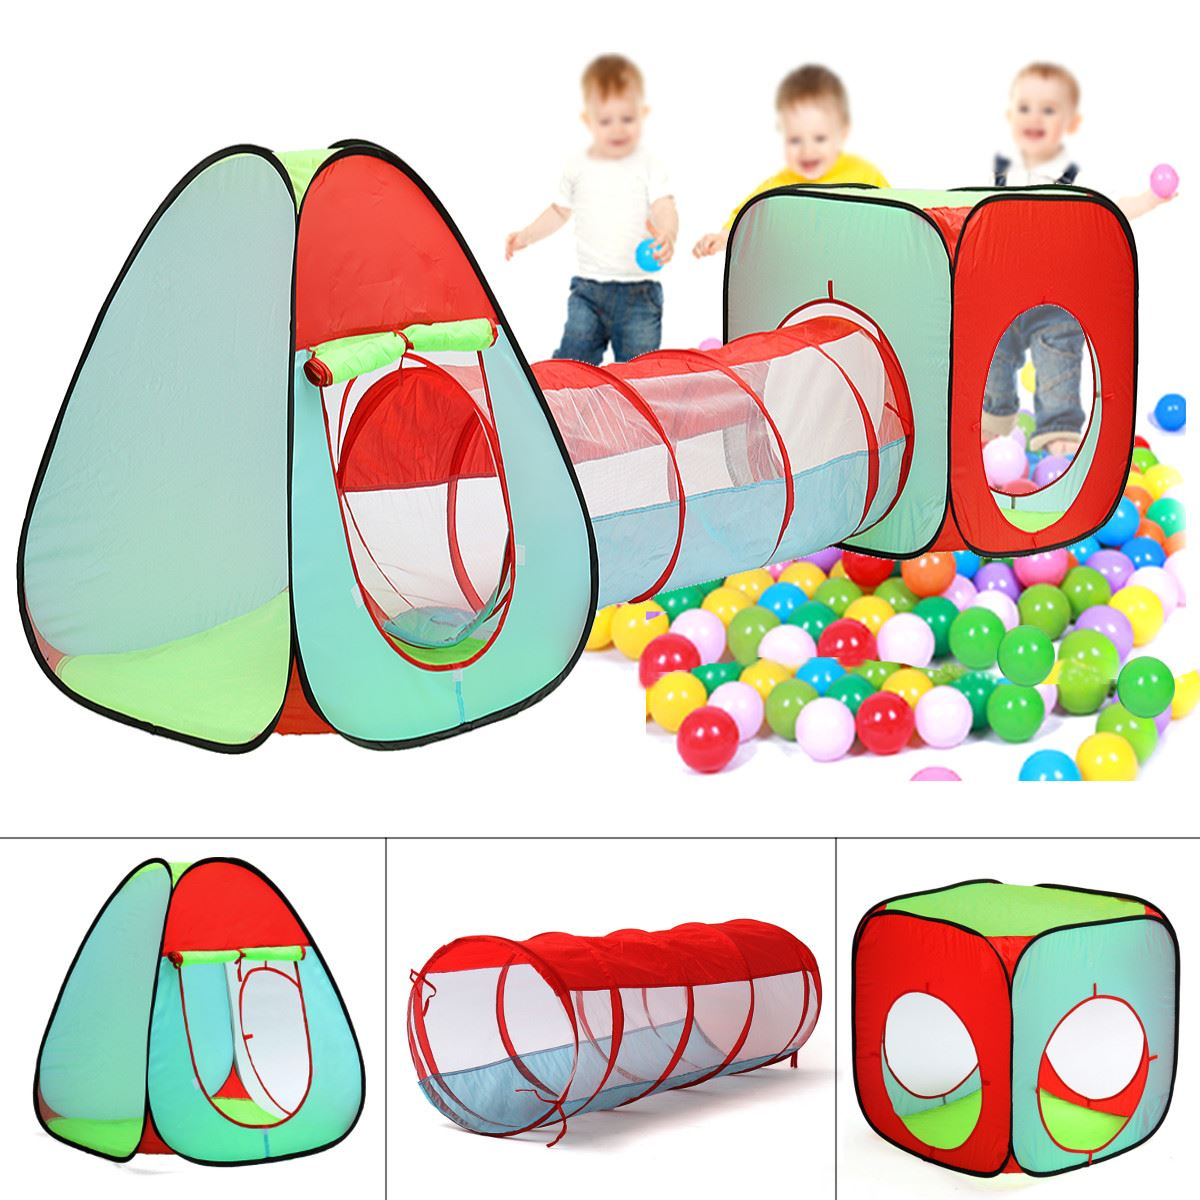 Portable 3 In 1 Kids Children Indoor Outdoor Play Tent Tunnel Ocean Ball Pit Toy Funny Toy Tents For Children